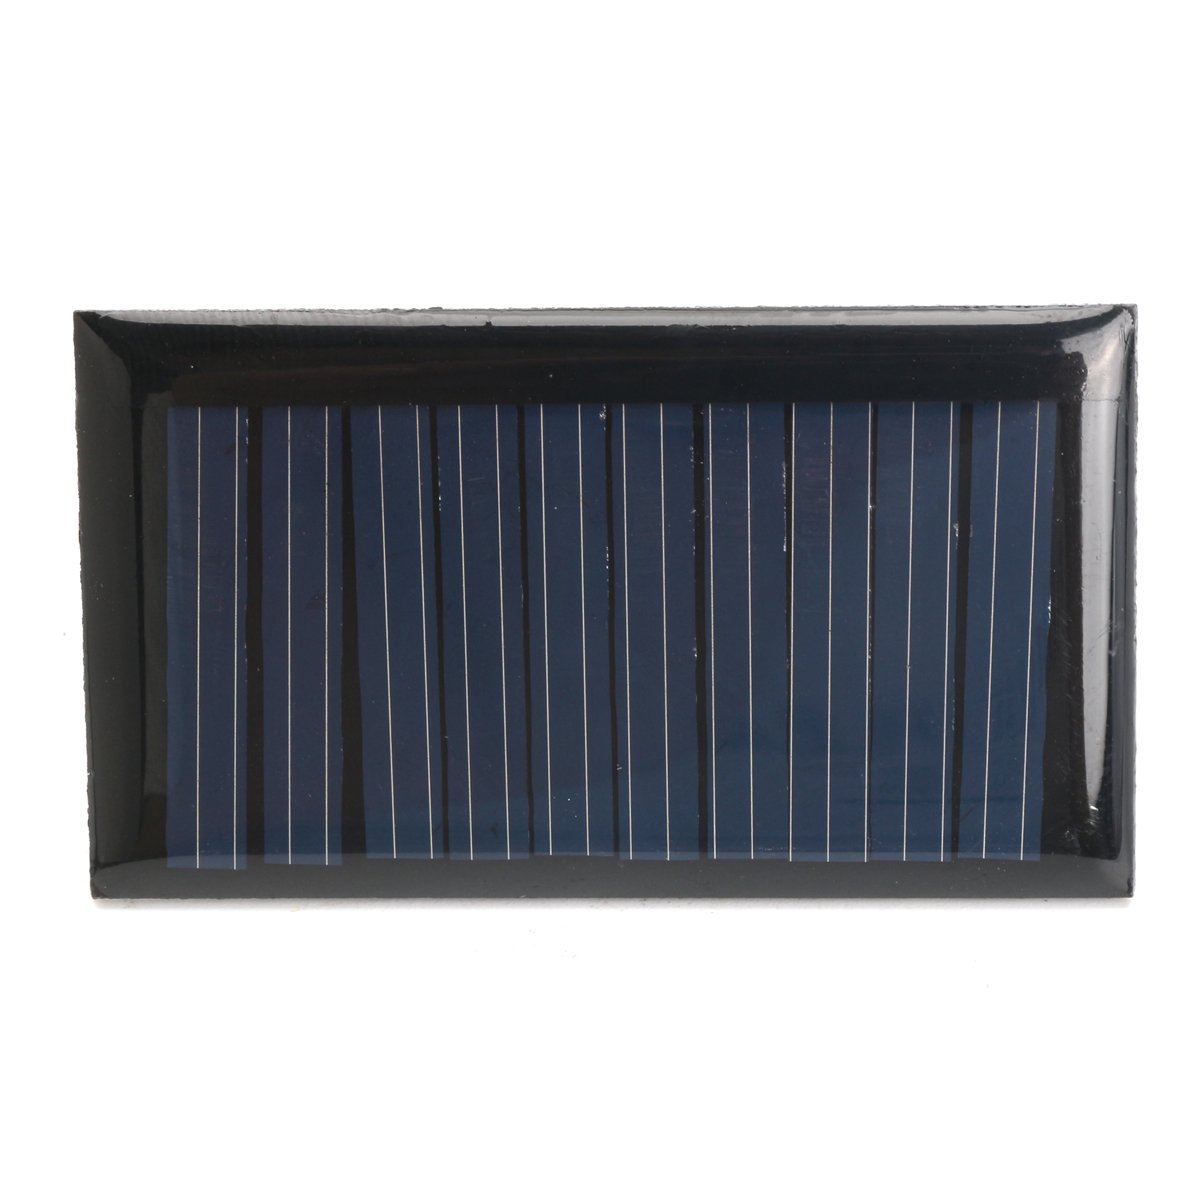 dDanke 30mA 5V 53*30mm Micro Mini Power Solar Cells 1Pcs without Wires for Solar Panels